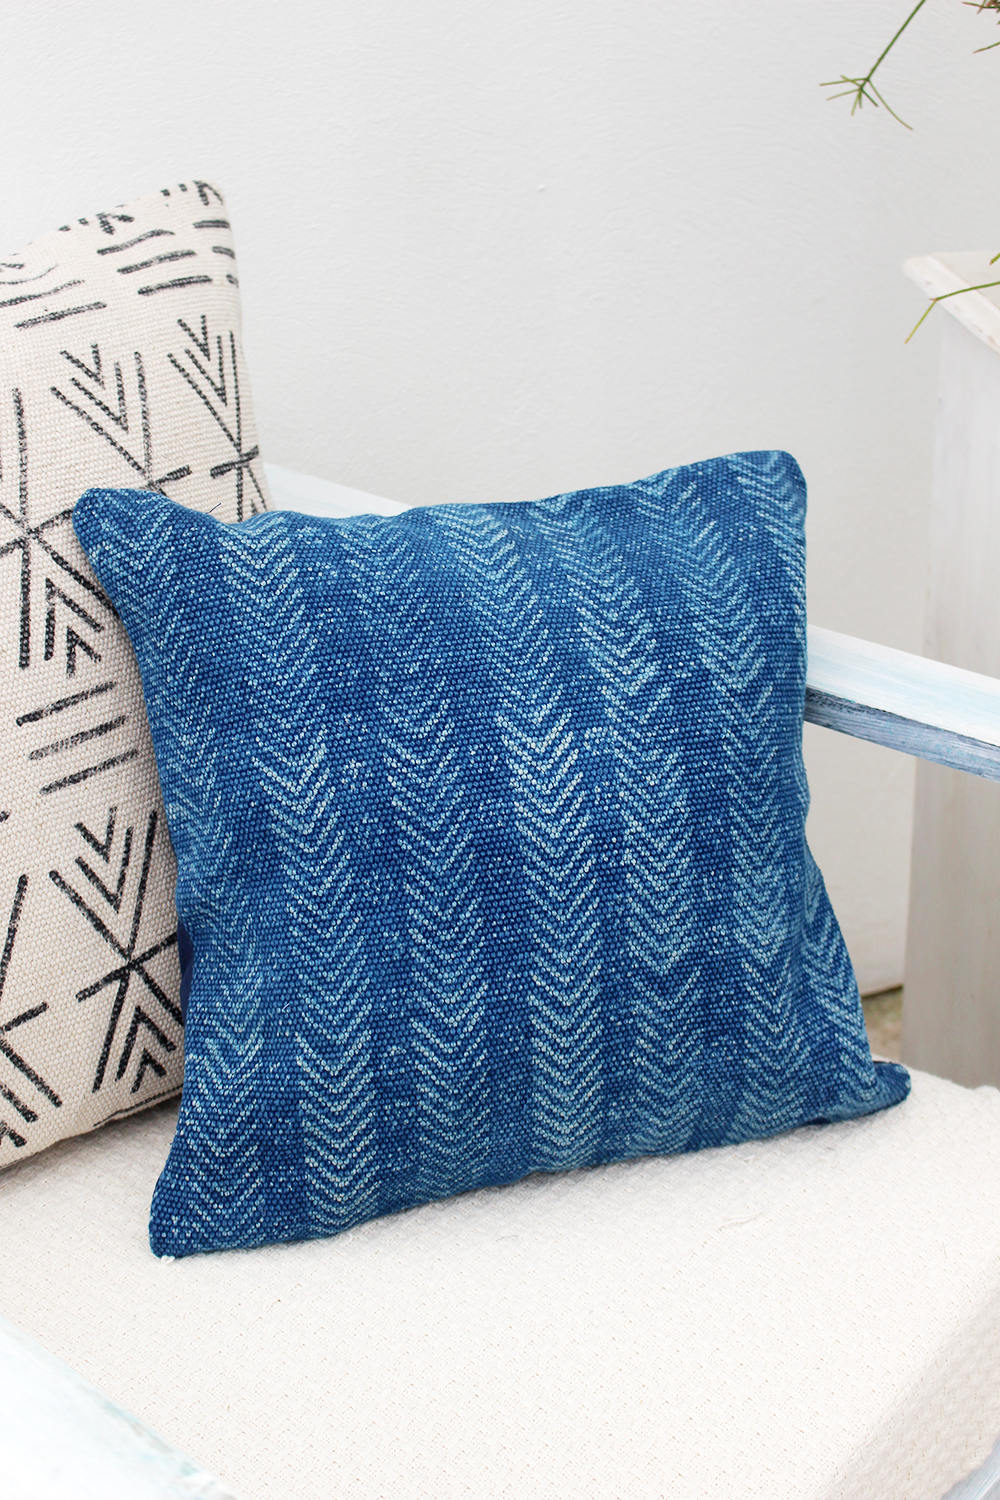 INDIGO SQUARE DECORATIVE CUSHION COVER